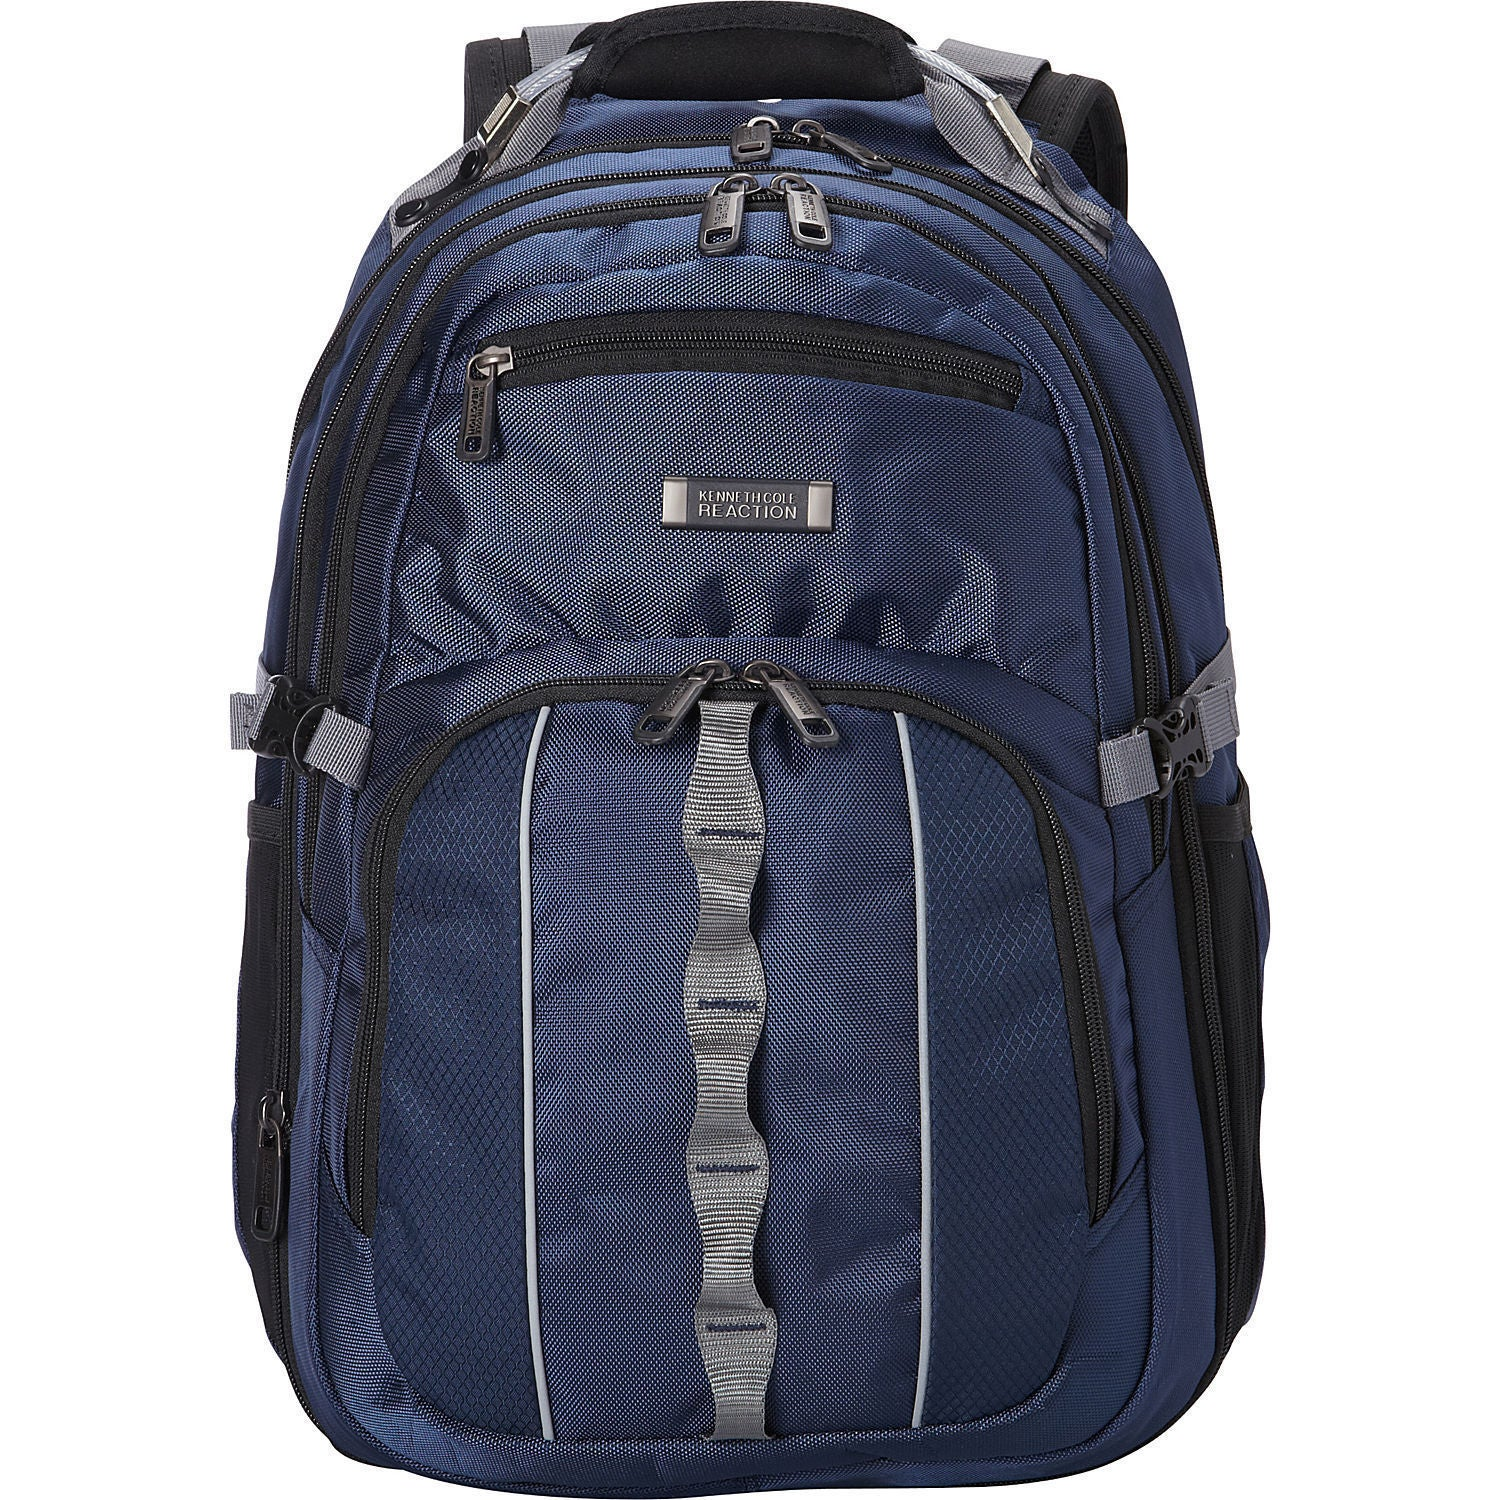 75d5b780c Shop Kenneth Cole Reaction 1680D Polyester Multi-Pocket Compact Expandable  17.3-inch Computer Business Backpack with Anti-theft RFID - Free Shipping  Today ...